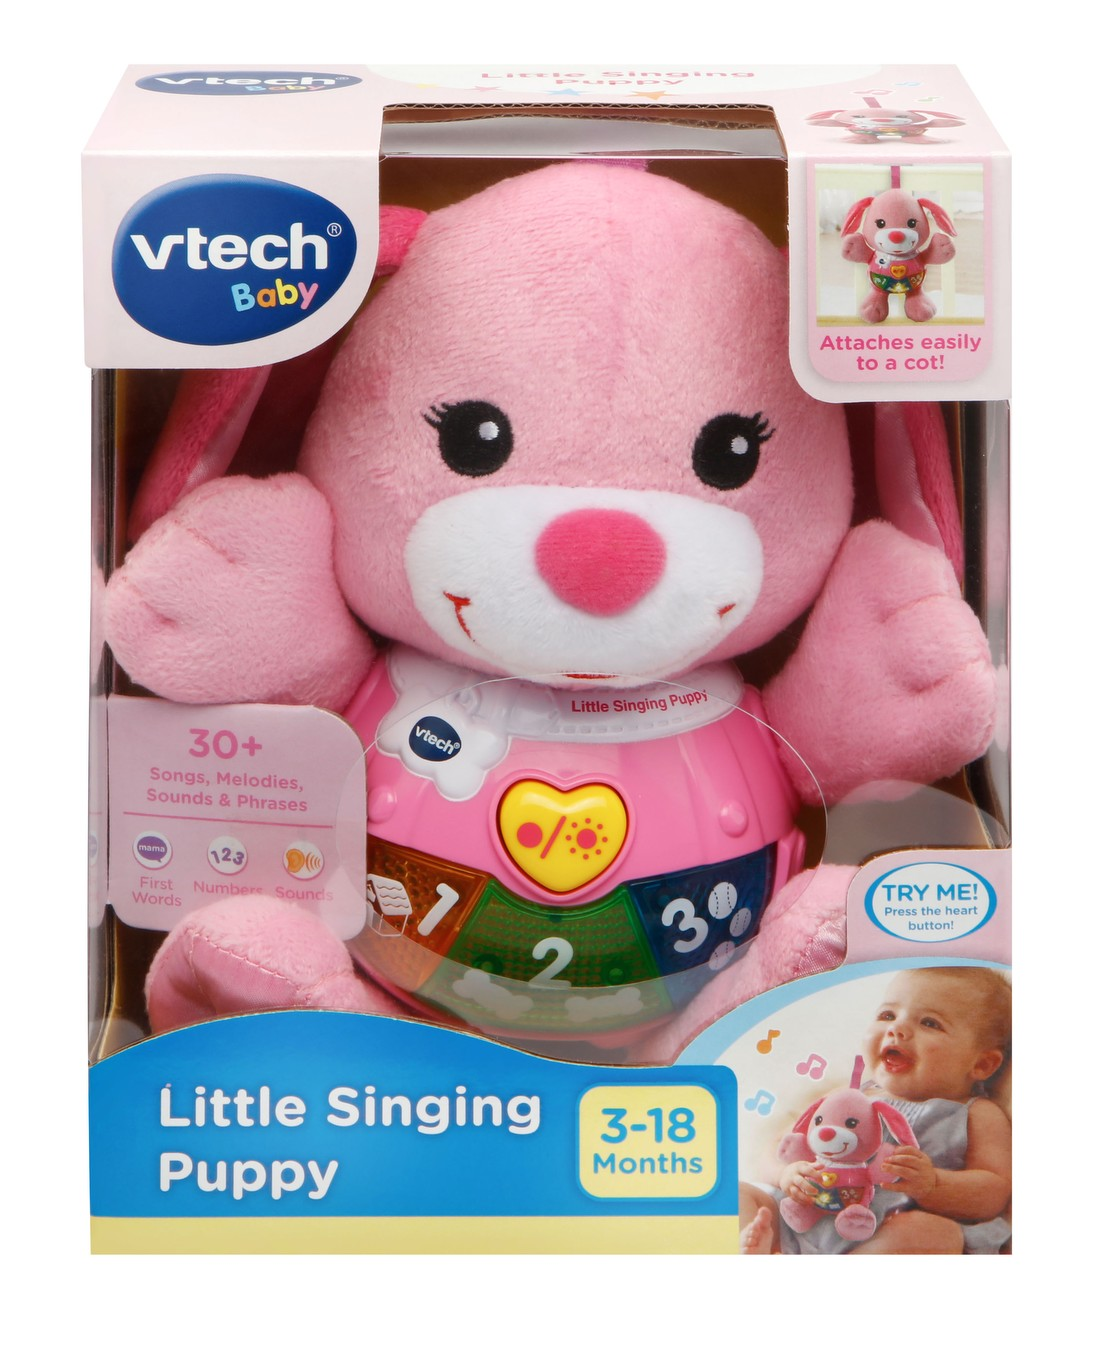 VTech Baby Little Singing Puppy Pink - VTech Toys Australia